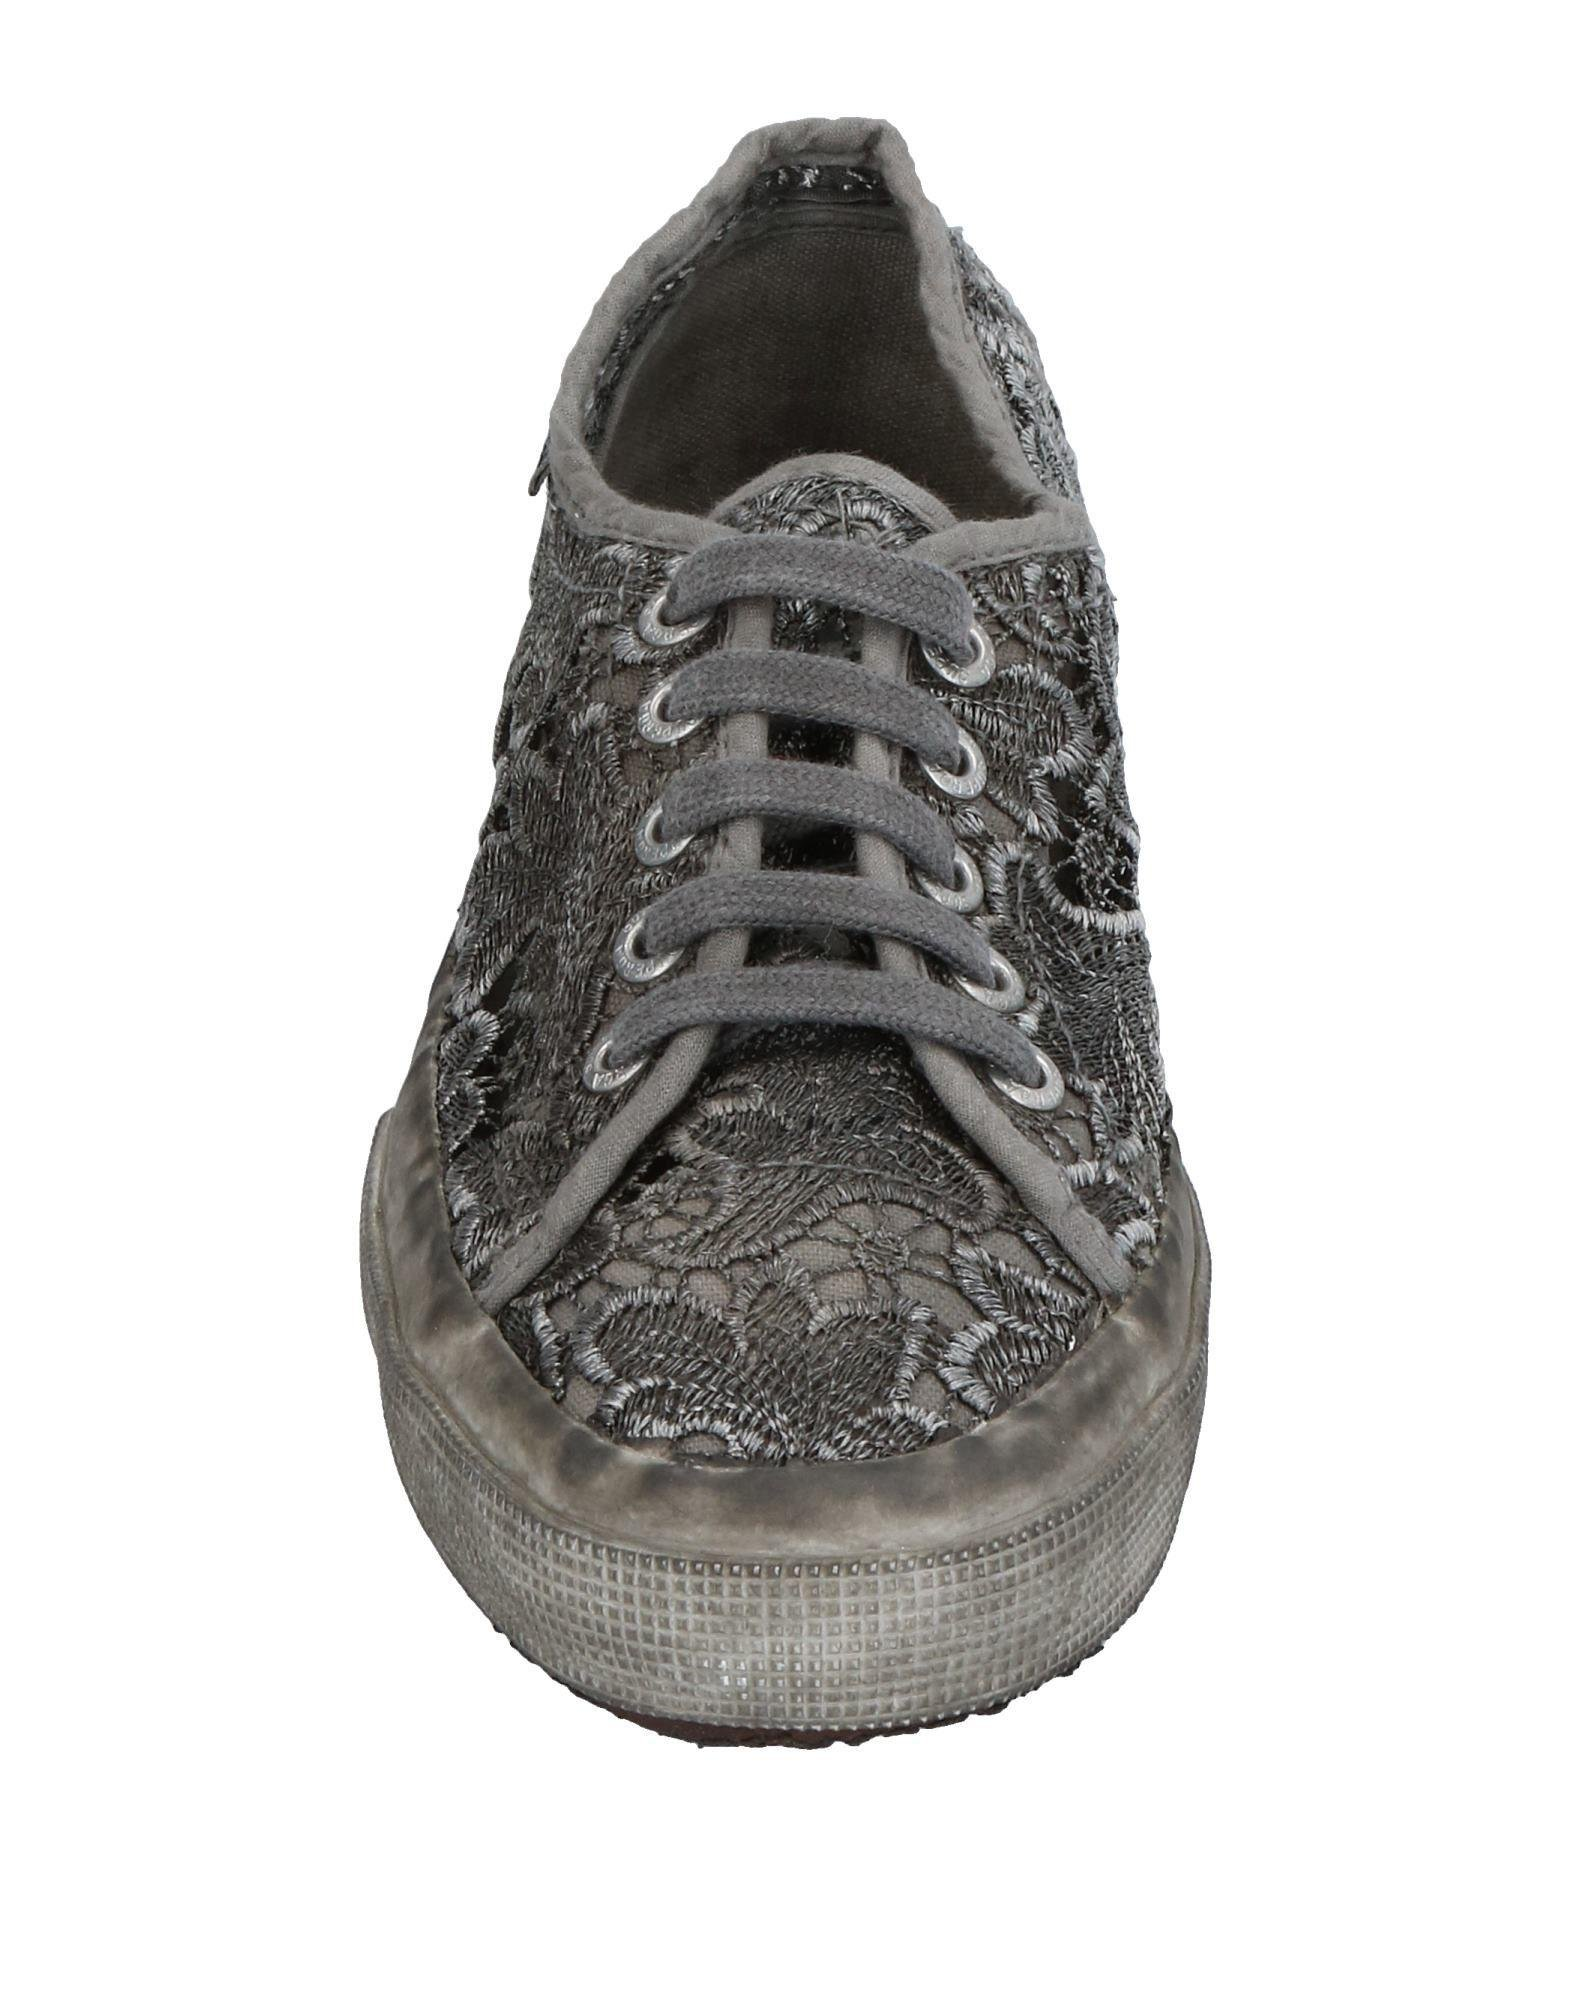 Superga Canvas Low-tops & Sneakers in Grey (Grey)